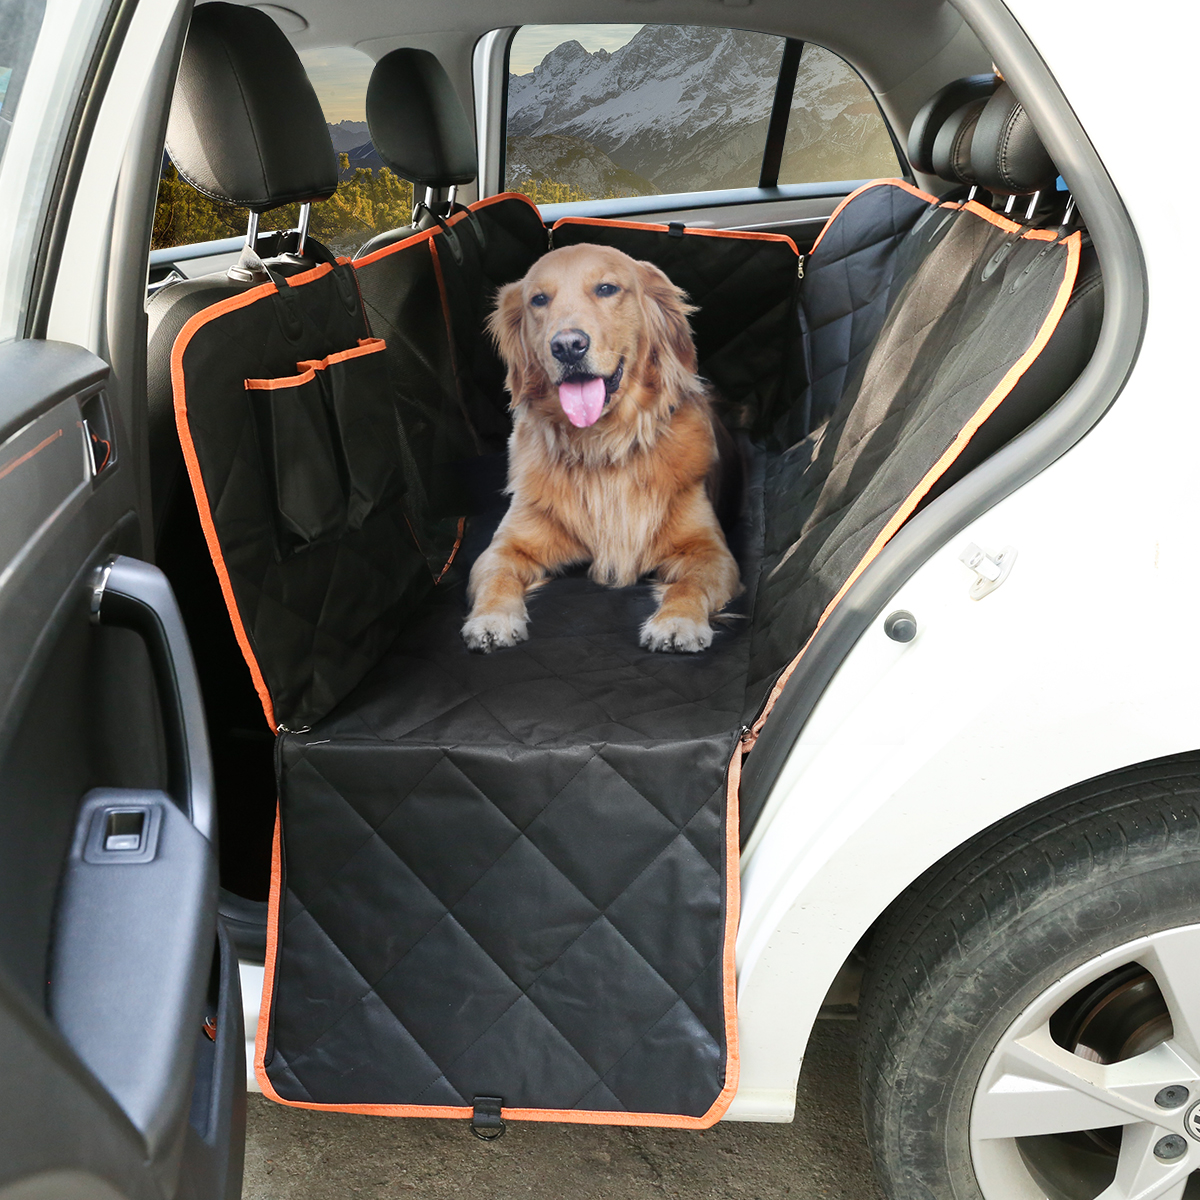 Dog Car Seat Cover with Storage Pocket, Mesh Viewing design, Non-Scratch Material and Waterproof, Seat Anchors and Nonslip Backing, Ideal for Dog Travel/Short & Long Travel, Suit for Car and Truck